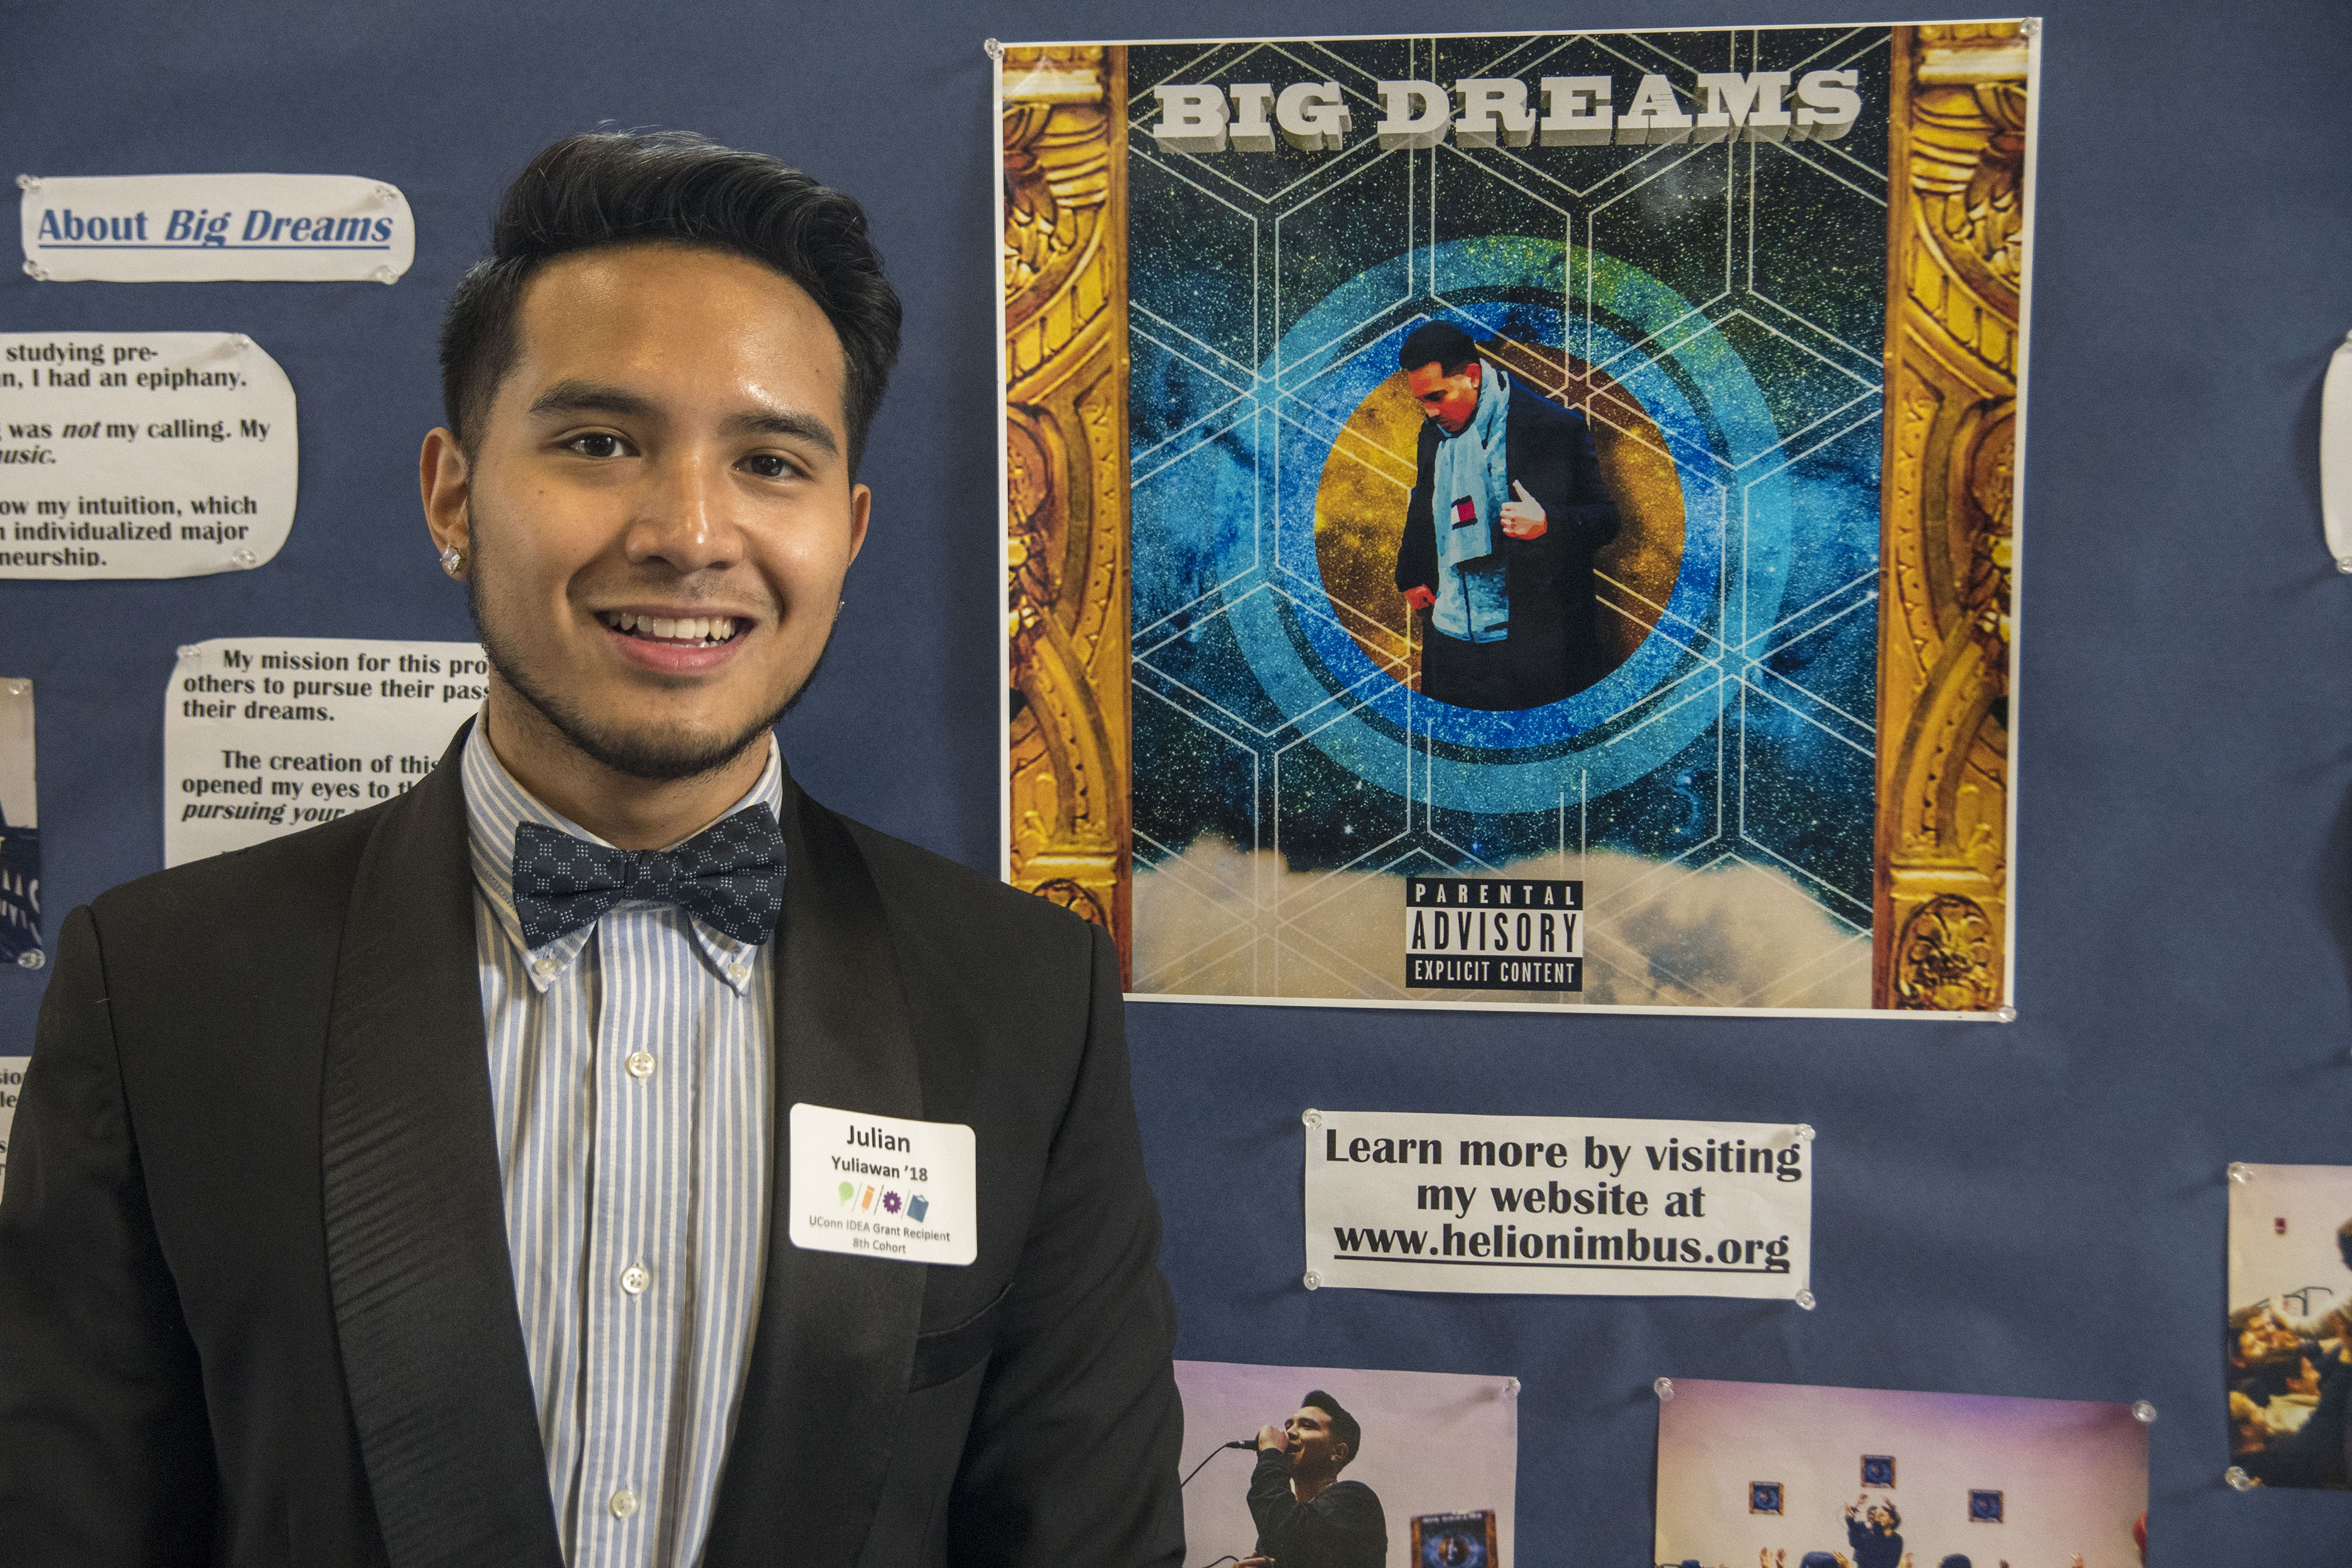 Julian Yuliawan, a senior music entrepreneurship major, at the UConn Idea Grant Year End Showcase on April 19, 2018. (Garrett Spahn/UConn Photo)